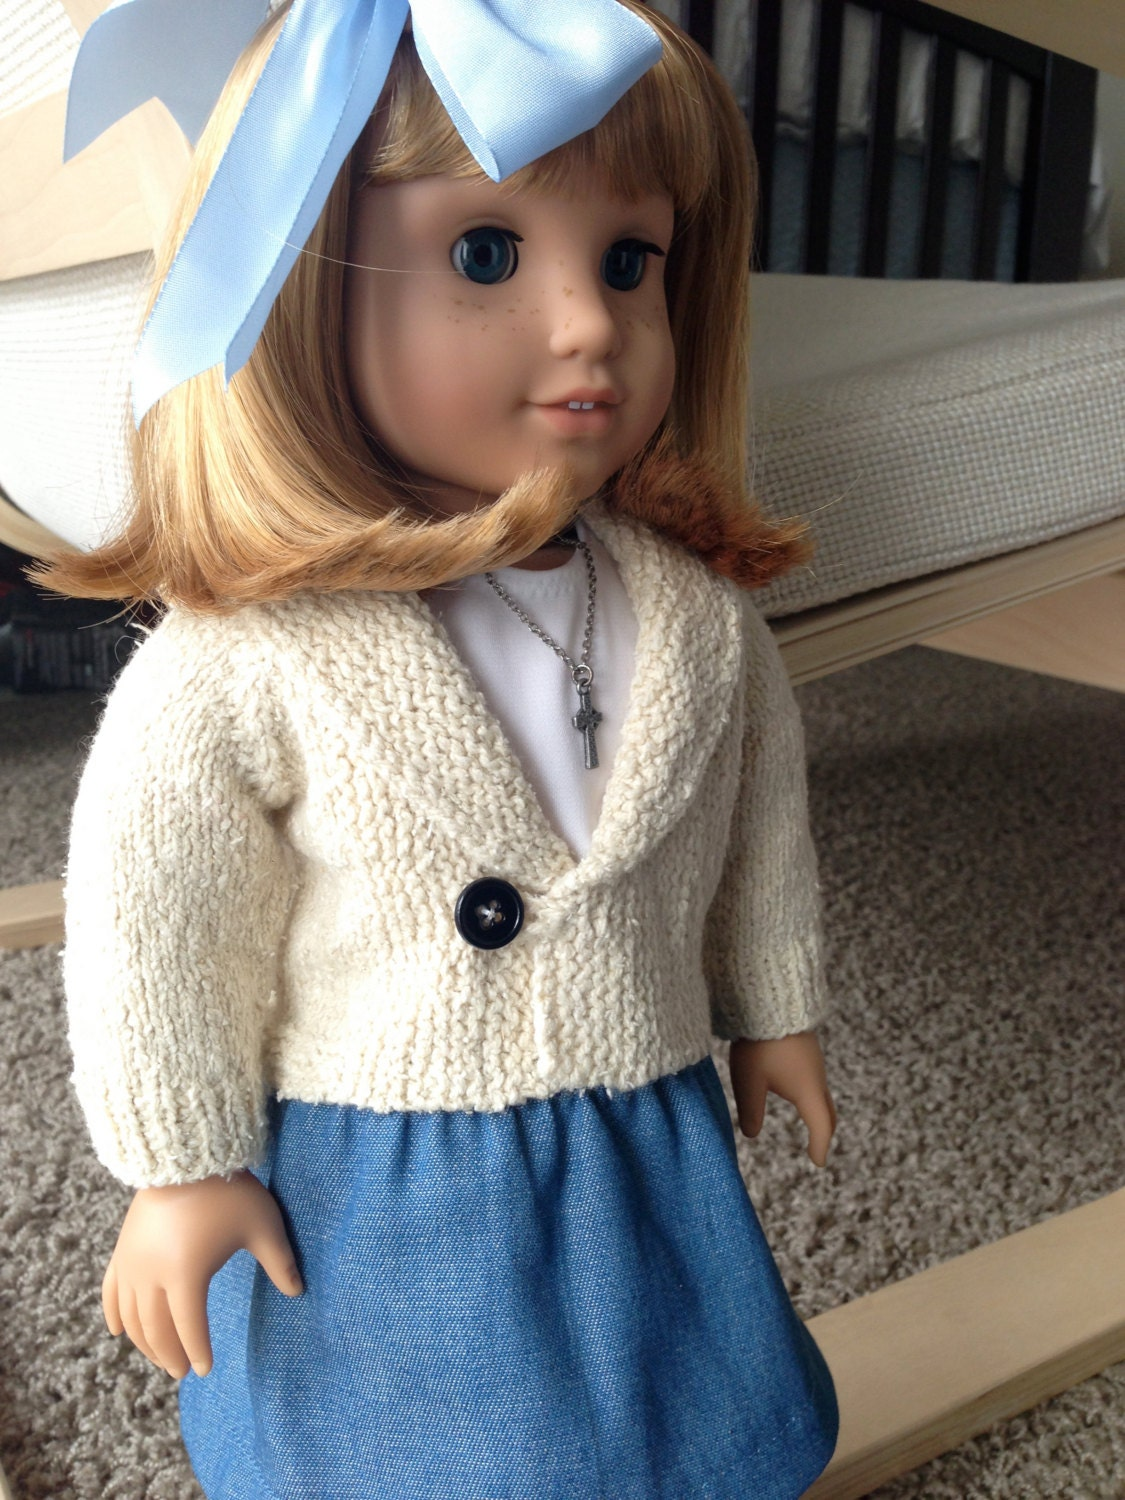 Doll Jacket Knitting Pattern : American Girl doll casual jacket pdf knitting pattern